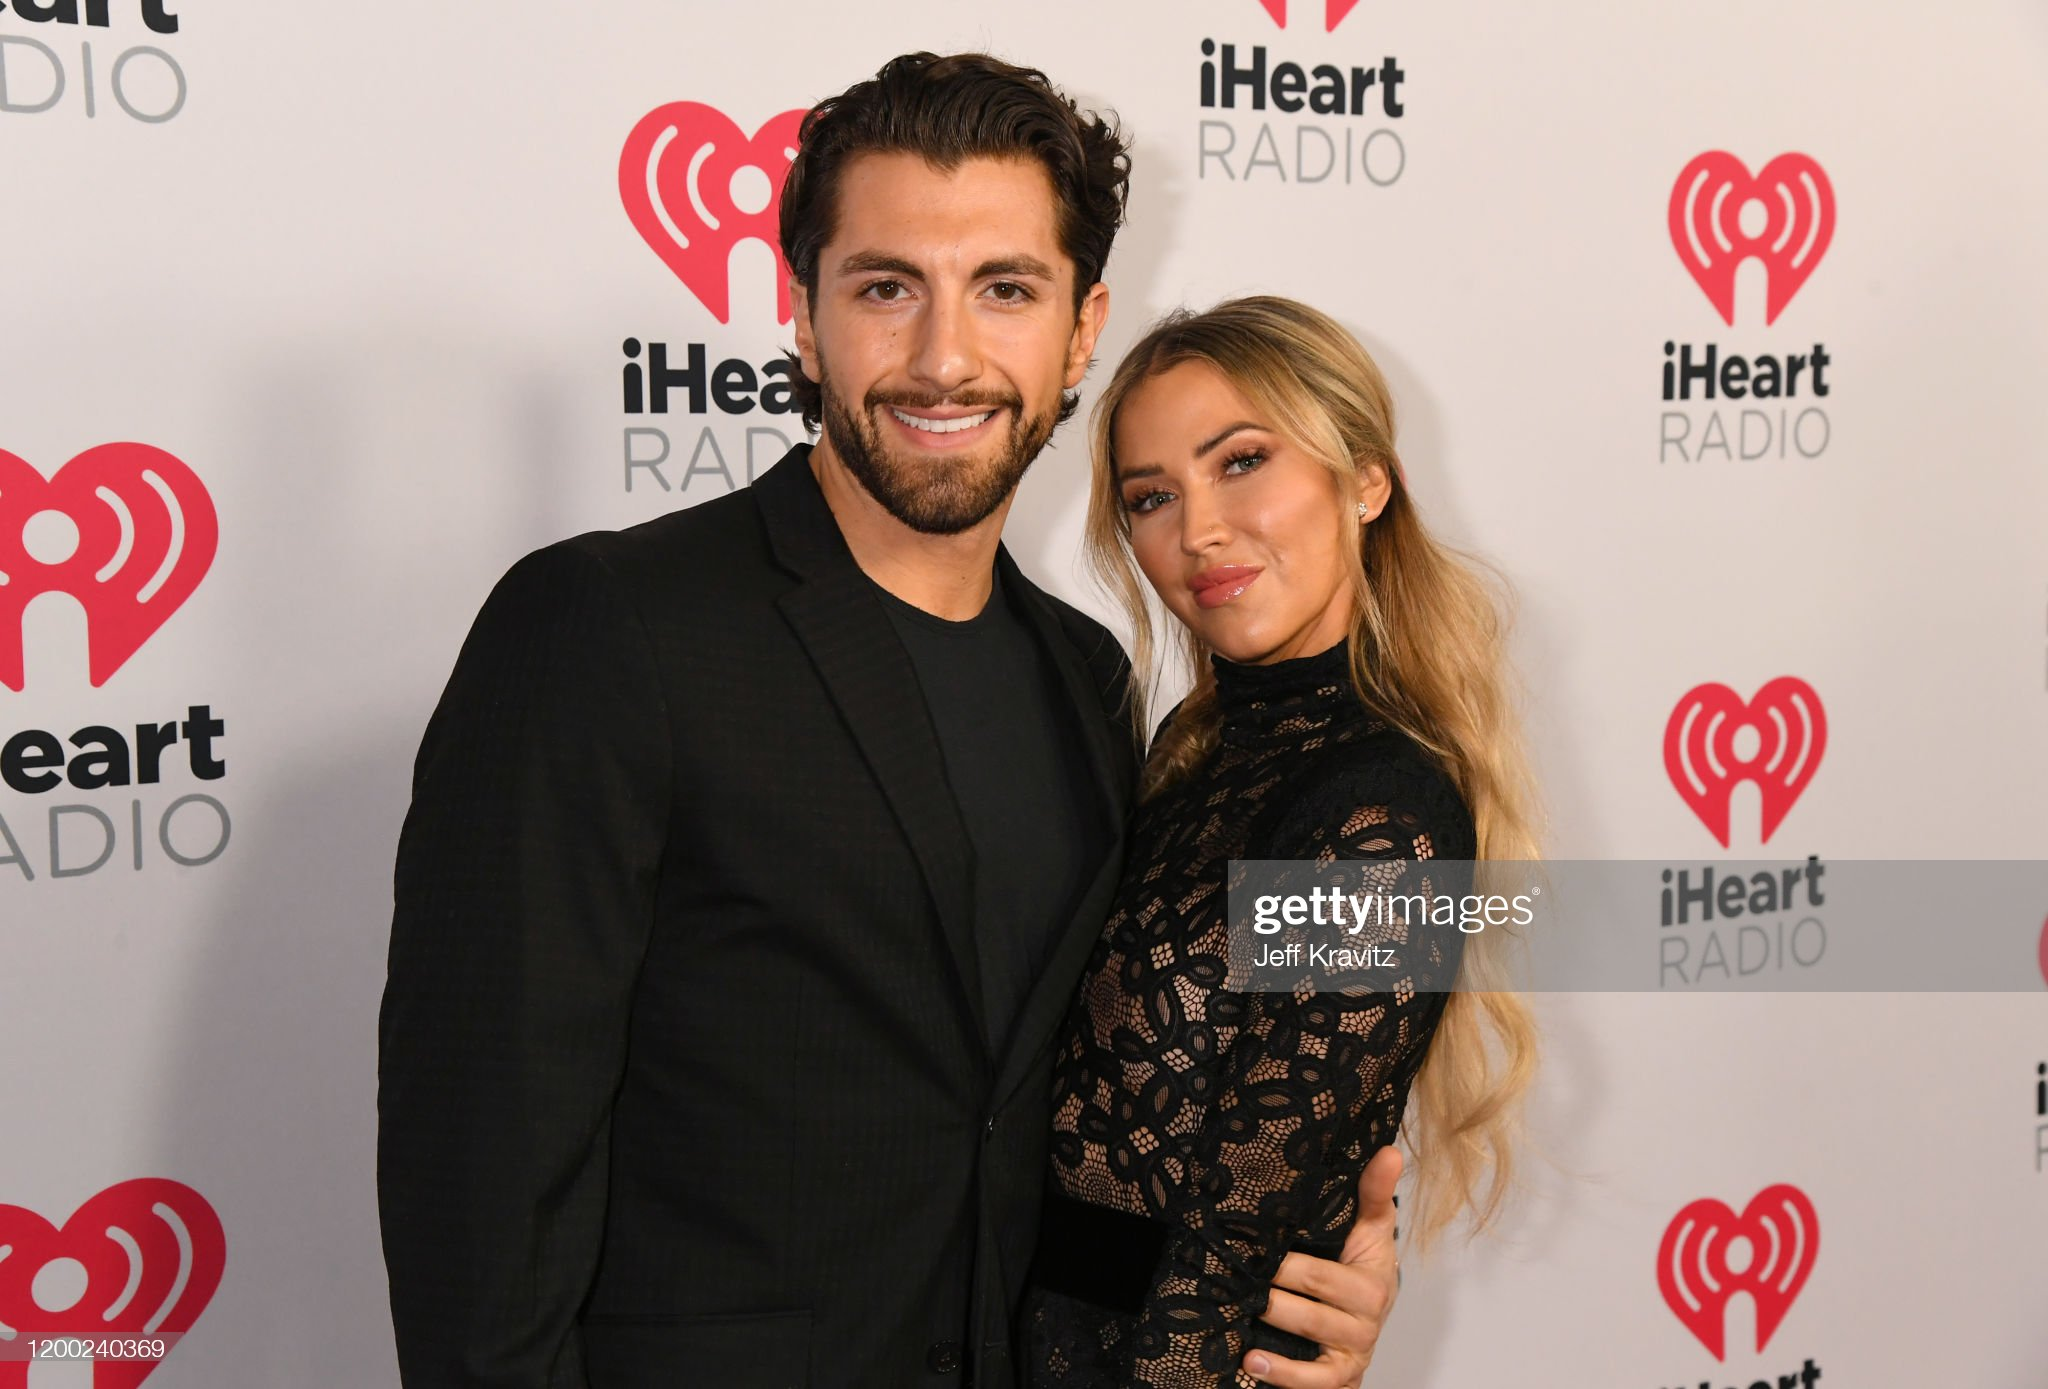 Kaitlyn Bristowe - Jason Tartick - FAN Forum - Discussion  - Page 51 Jason-tartick-and-kaitlyn-bristowe-attend-the-2020-iheartradio-at-picture-id1200240369?s=2048x2048